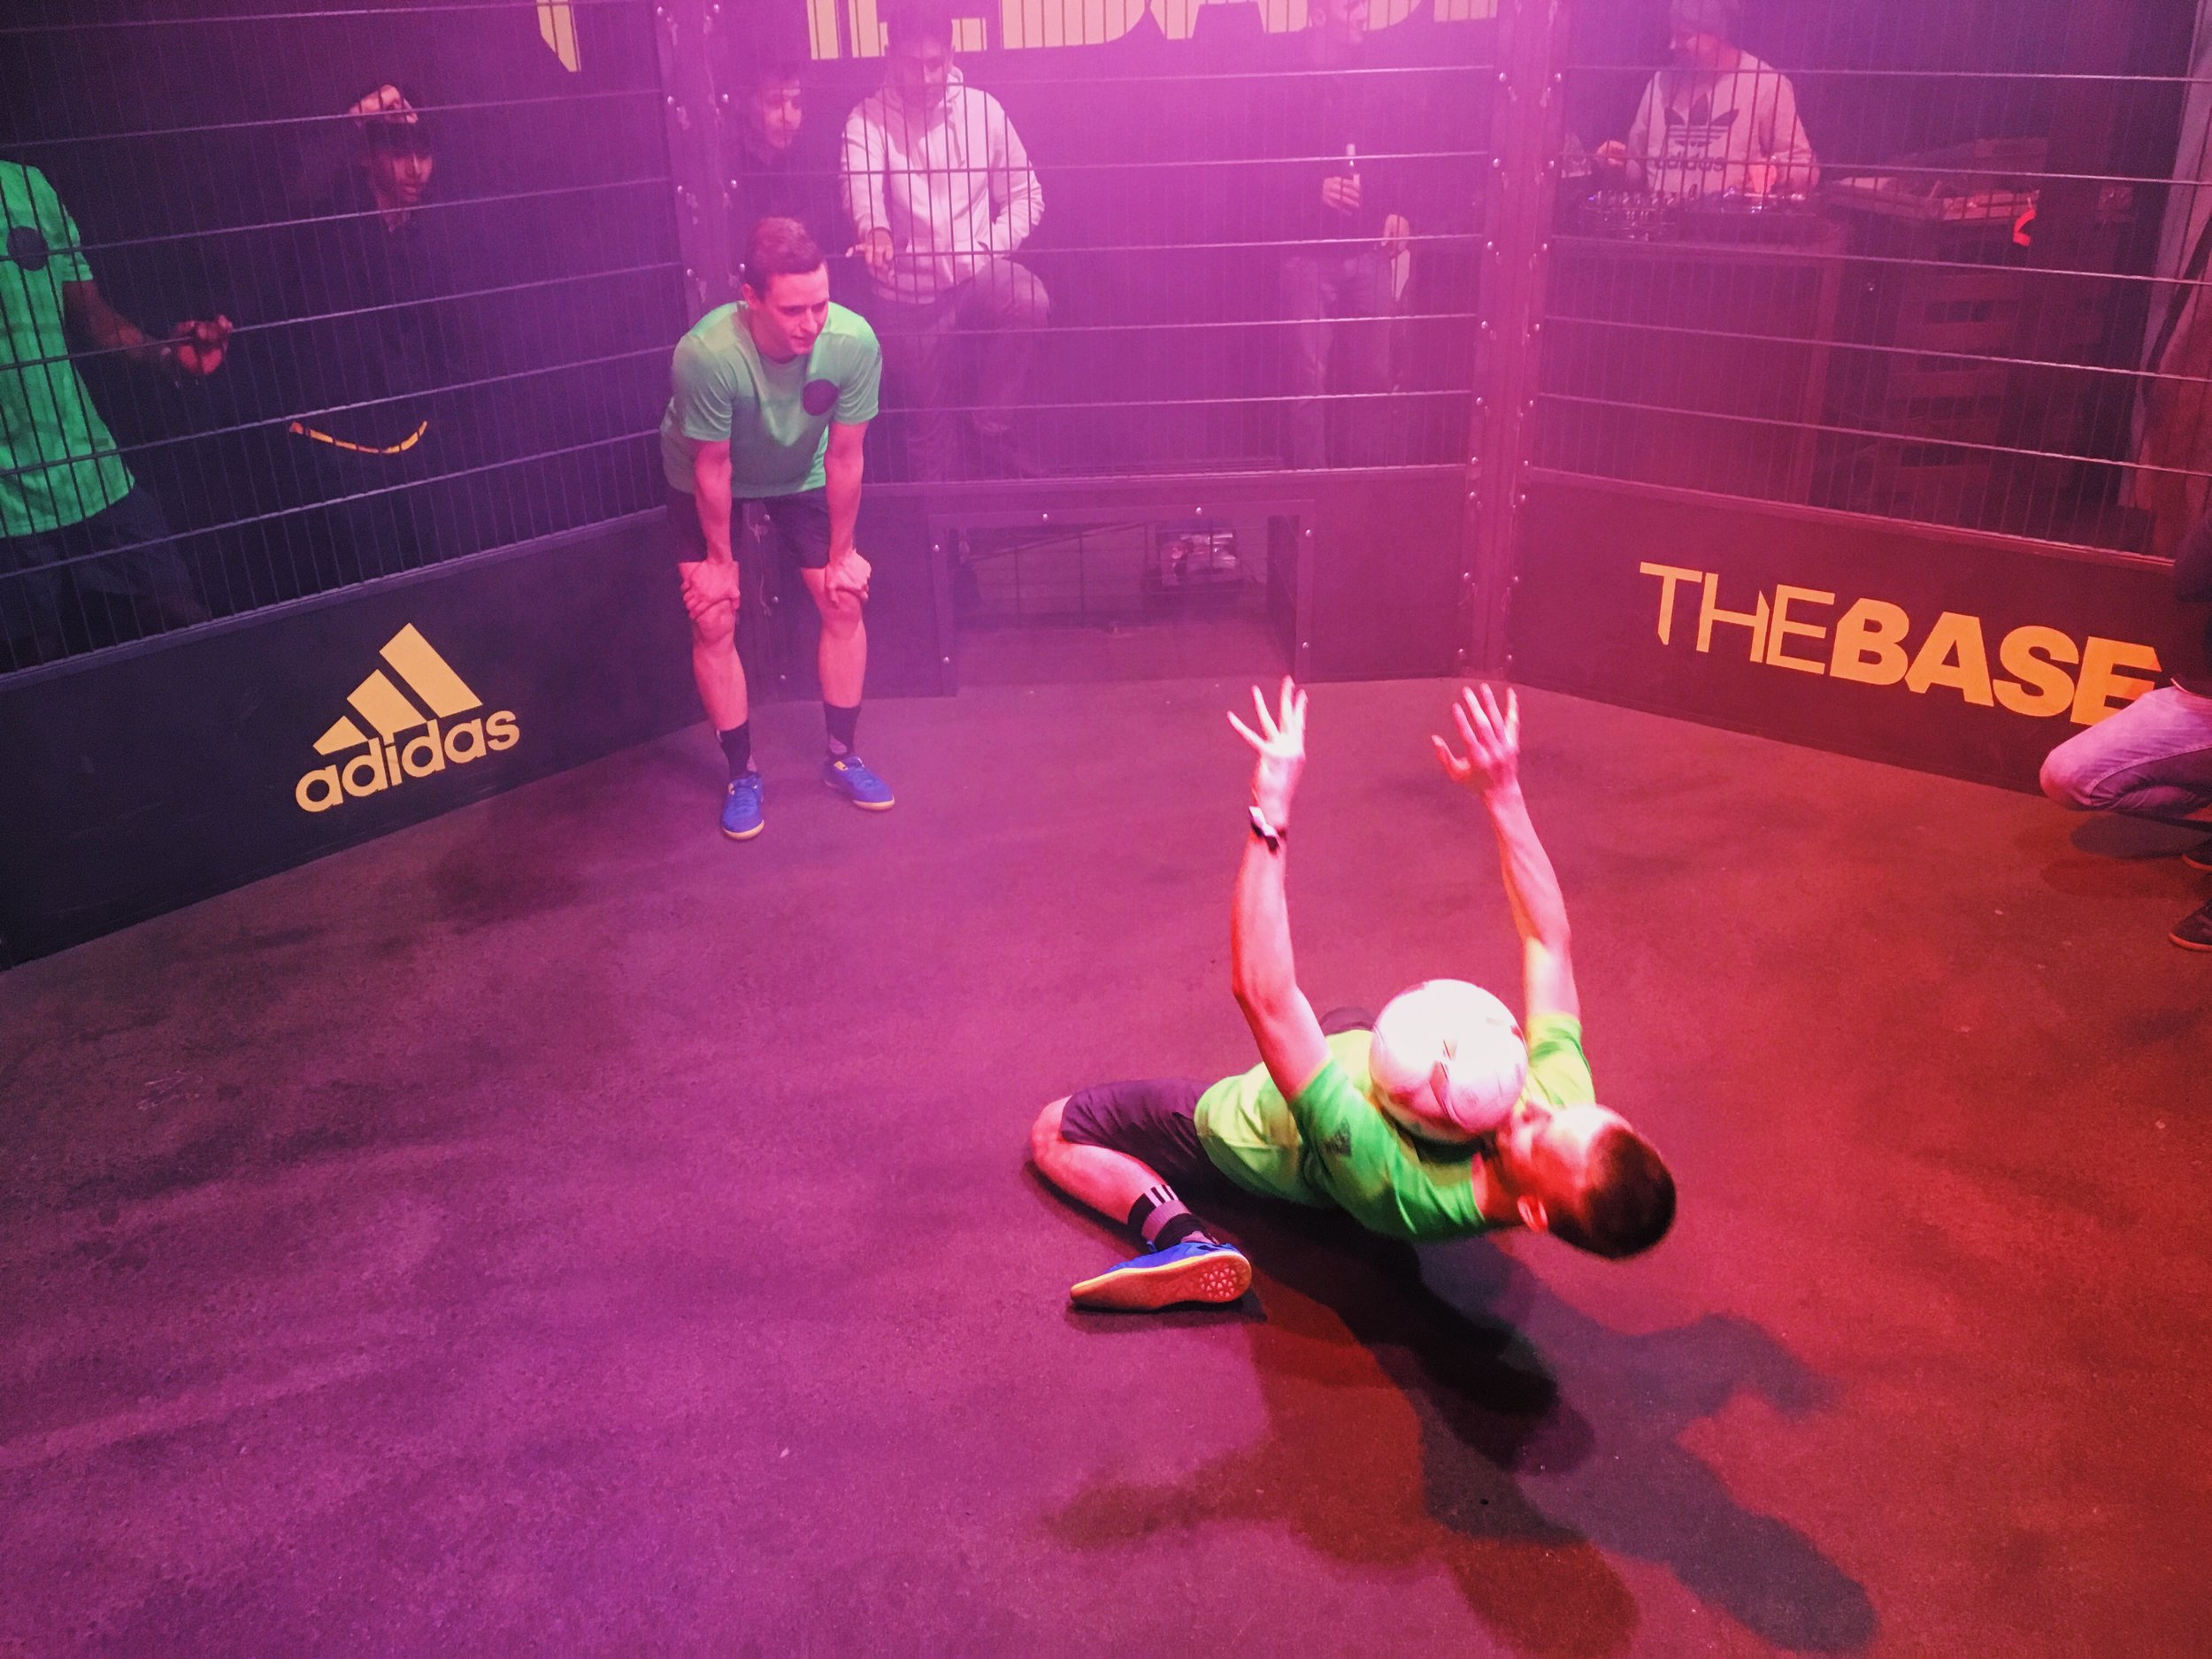 Adidas - The Base - Panna Event